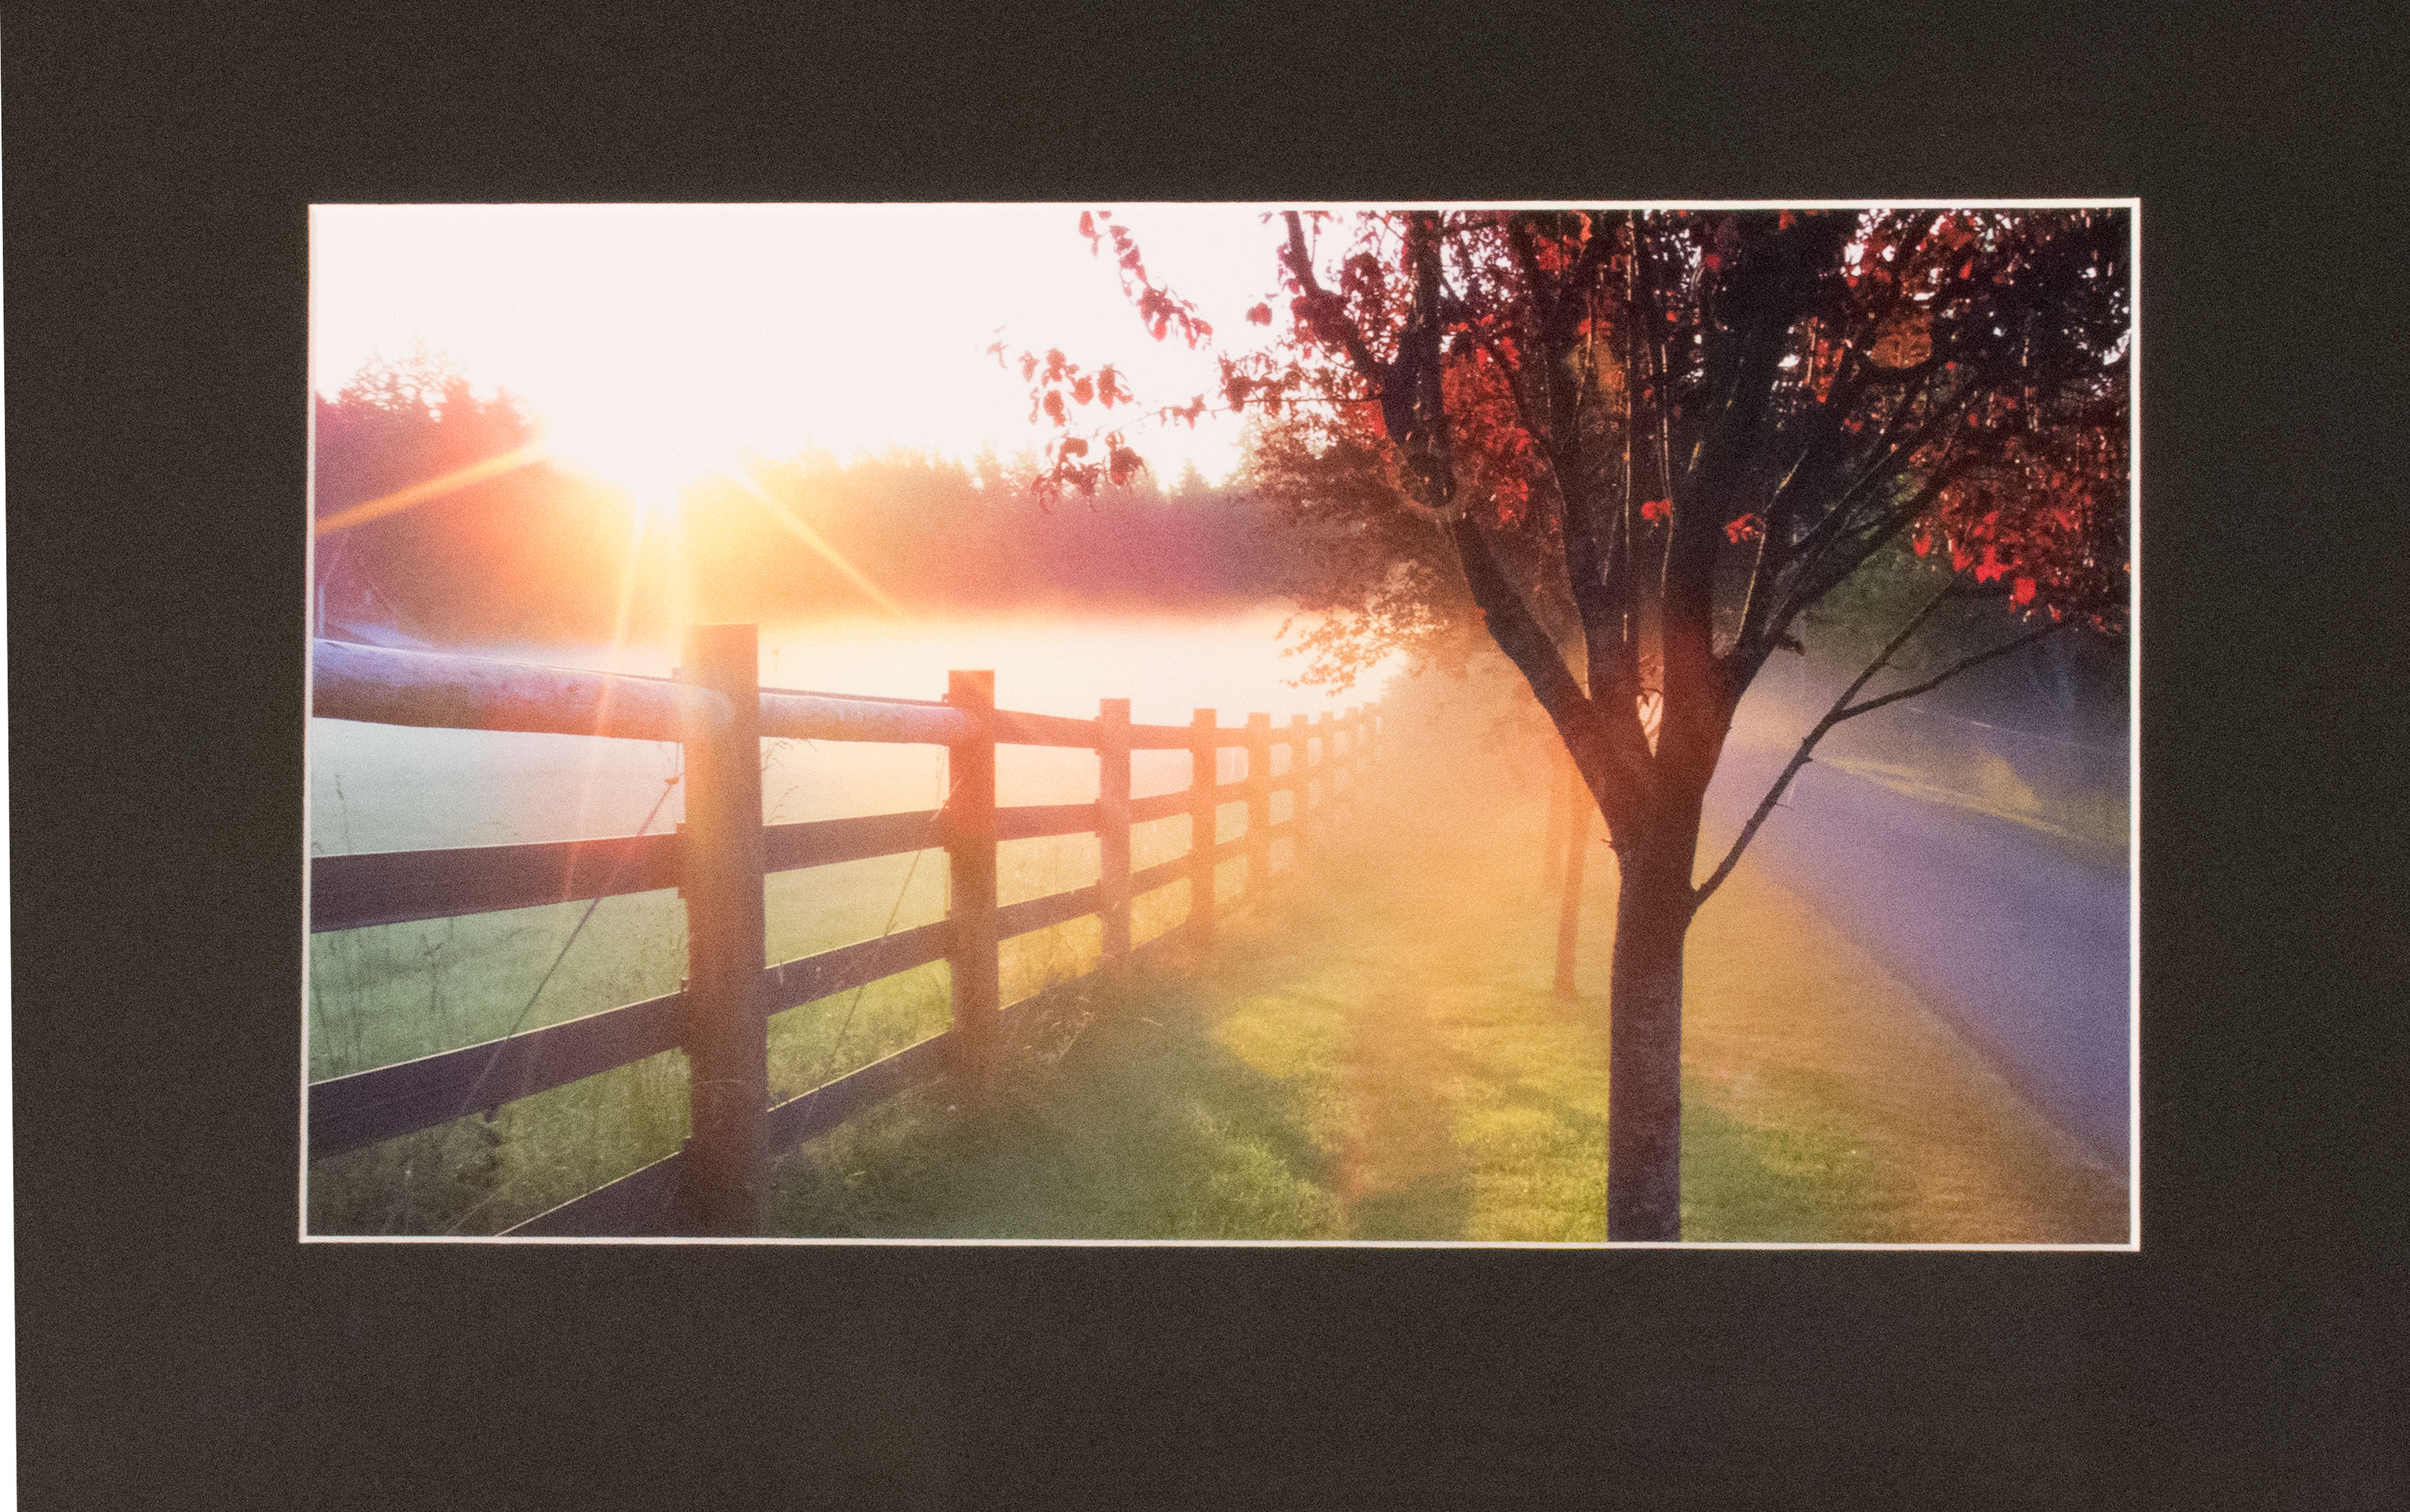 photo of orange sunrise across a fence and tree